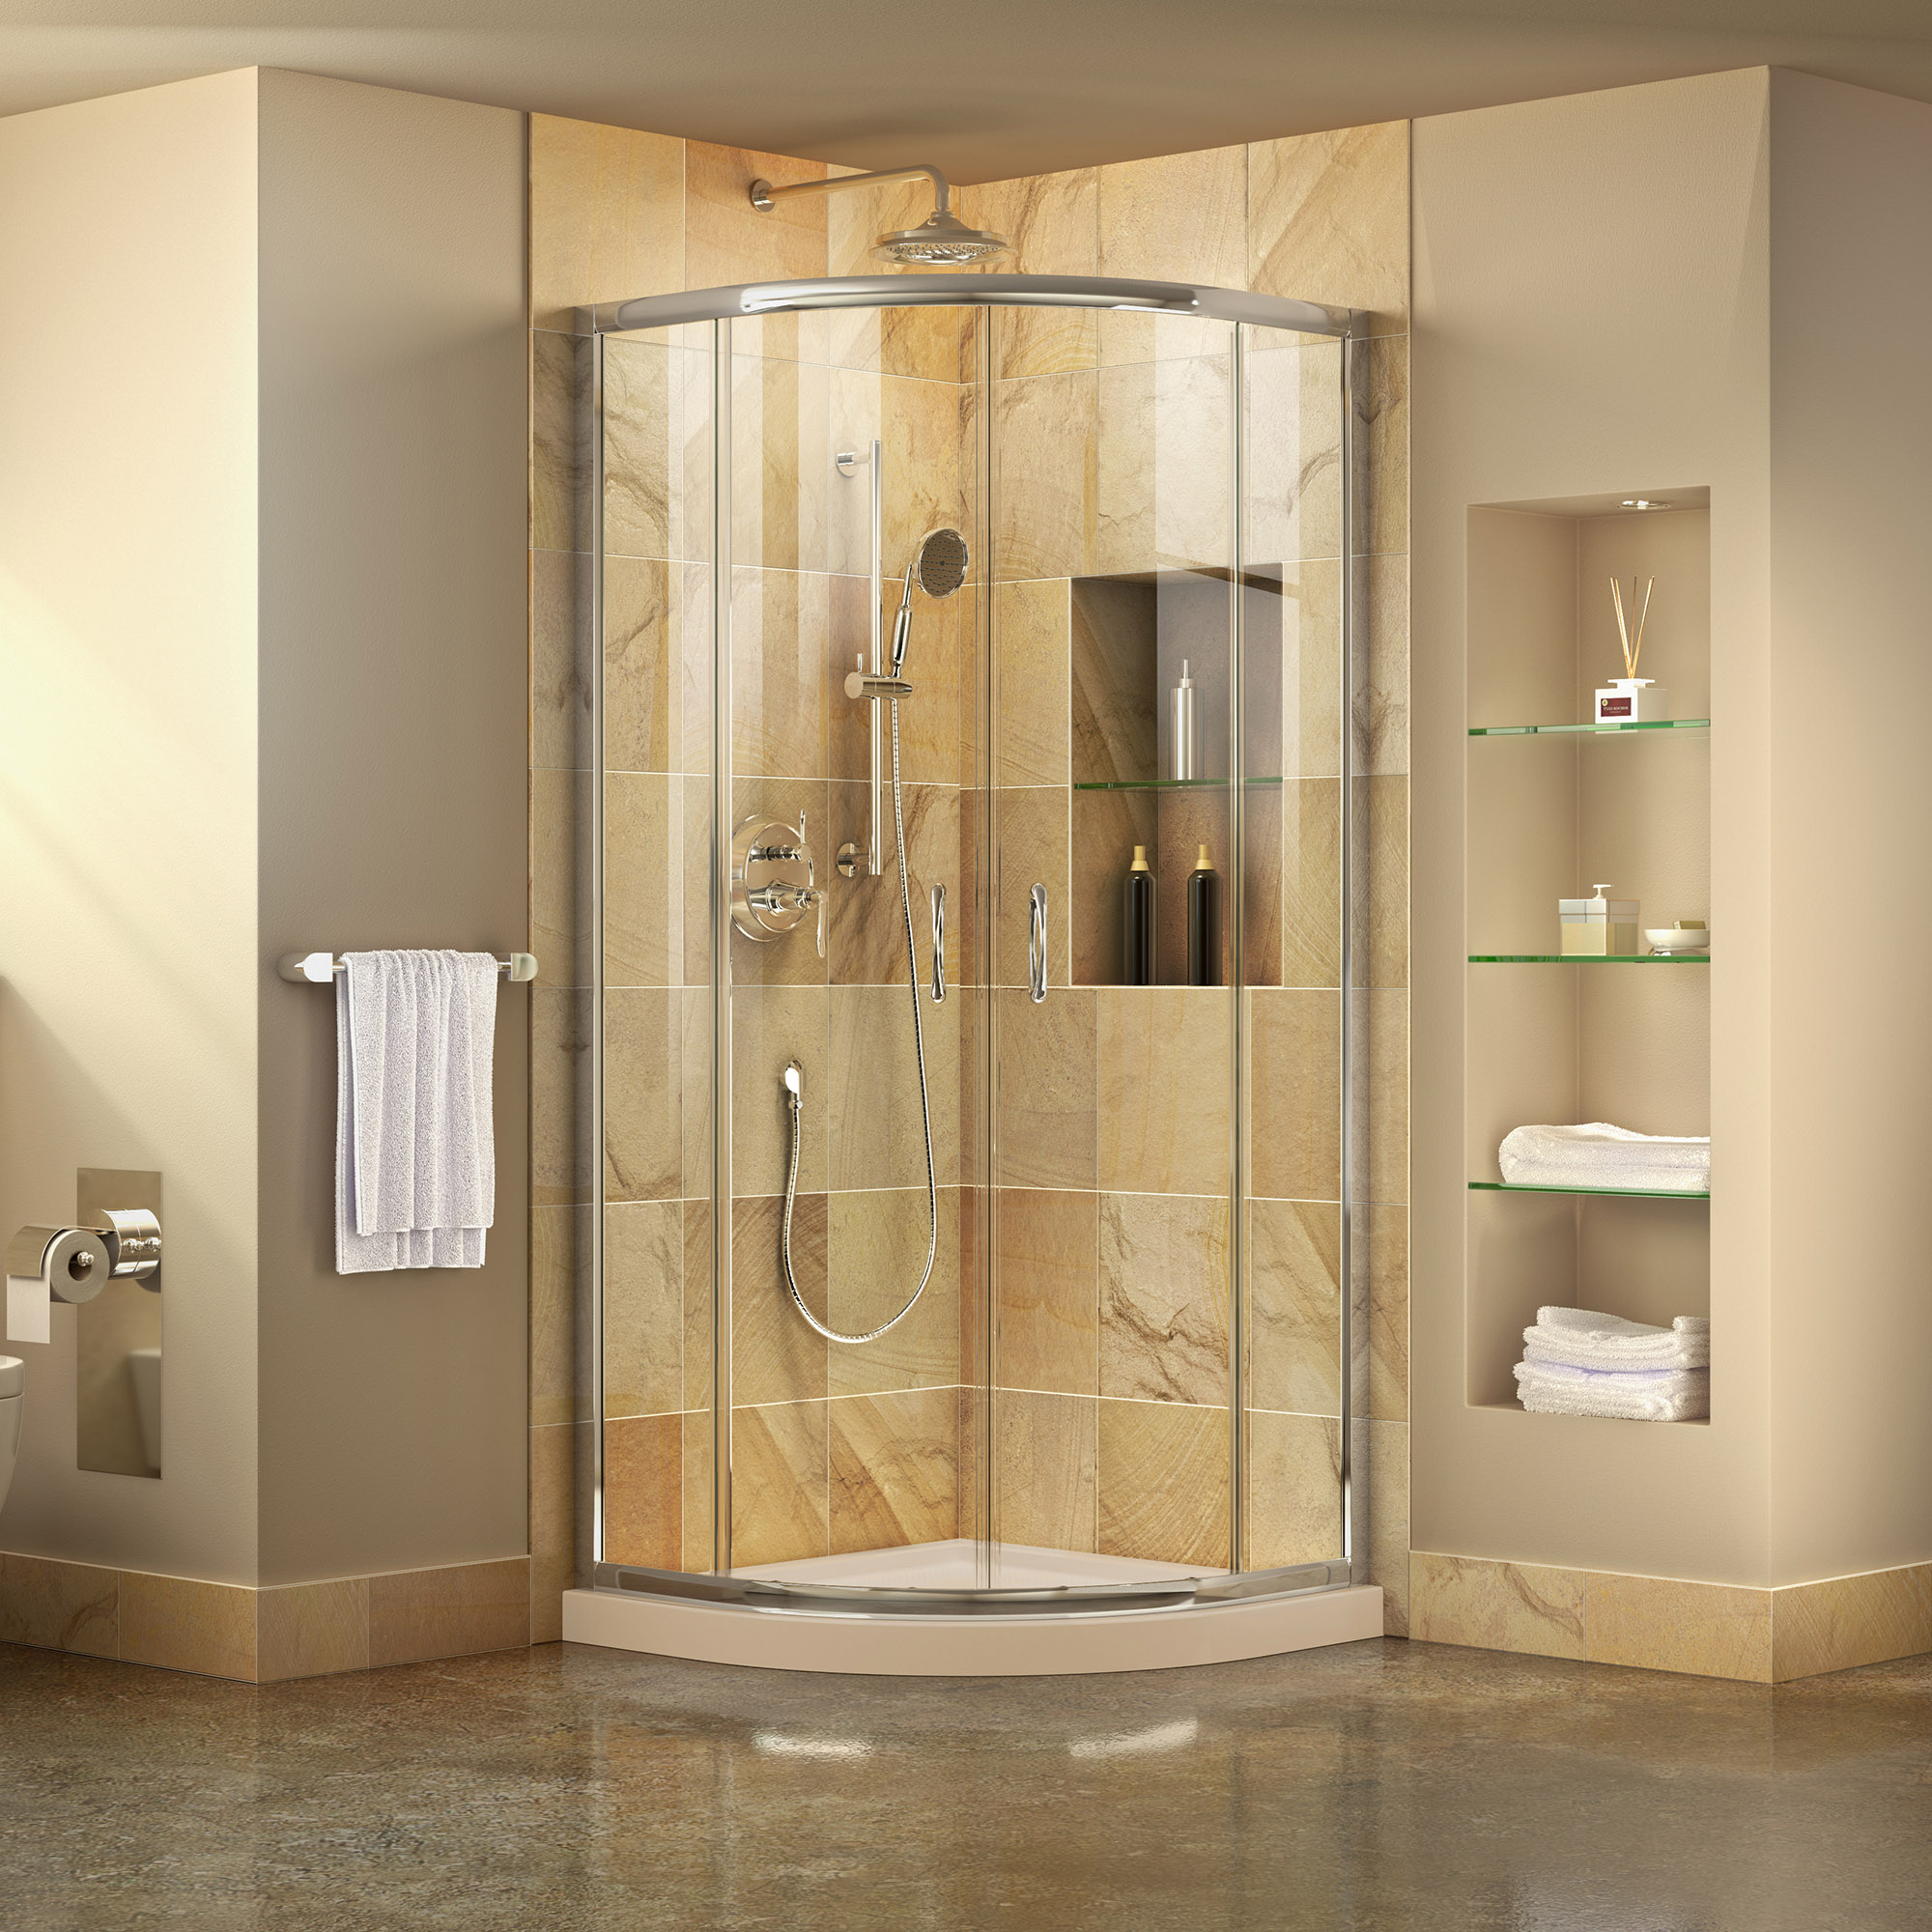 Prime Frameless Sliding Shower Enclosure & SlimLine 38